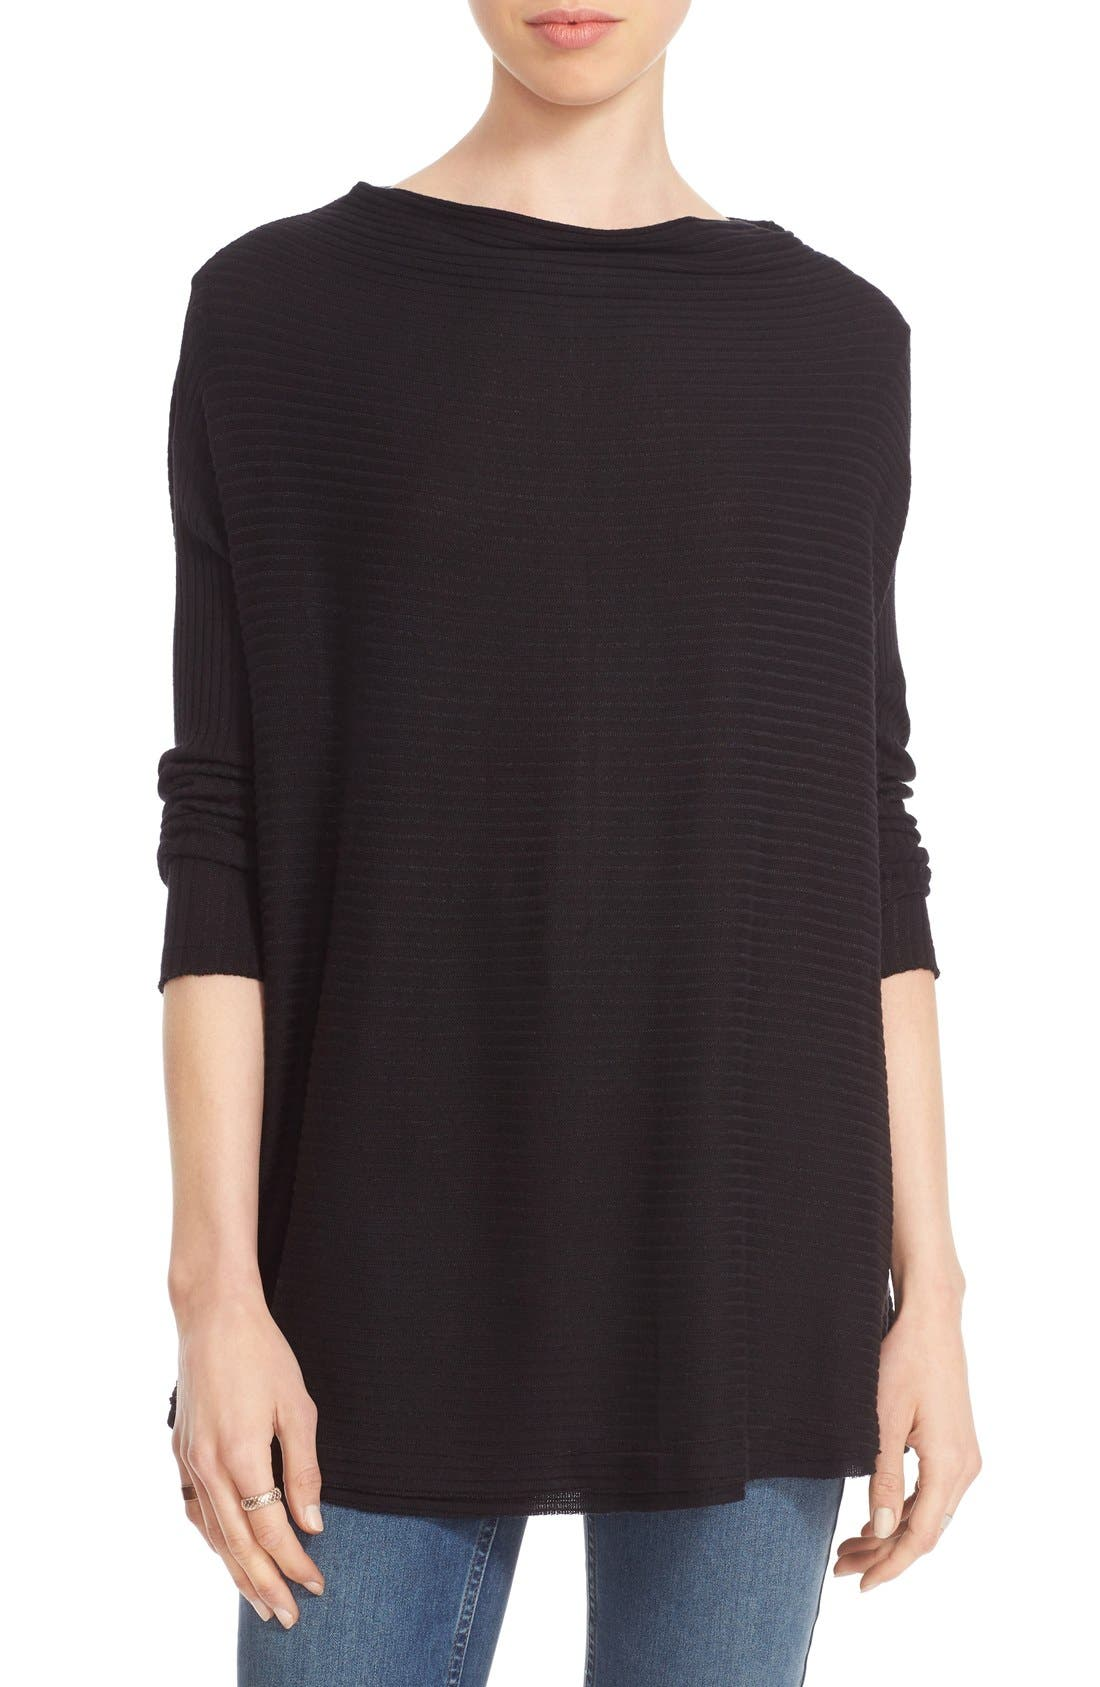 Alternate Image 1 Selected - Free People 'Love' Split Back Pullover